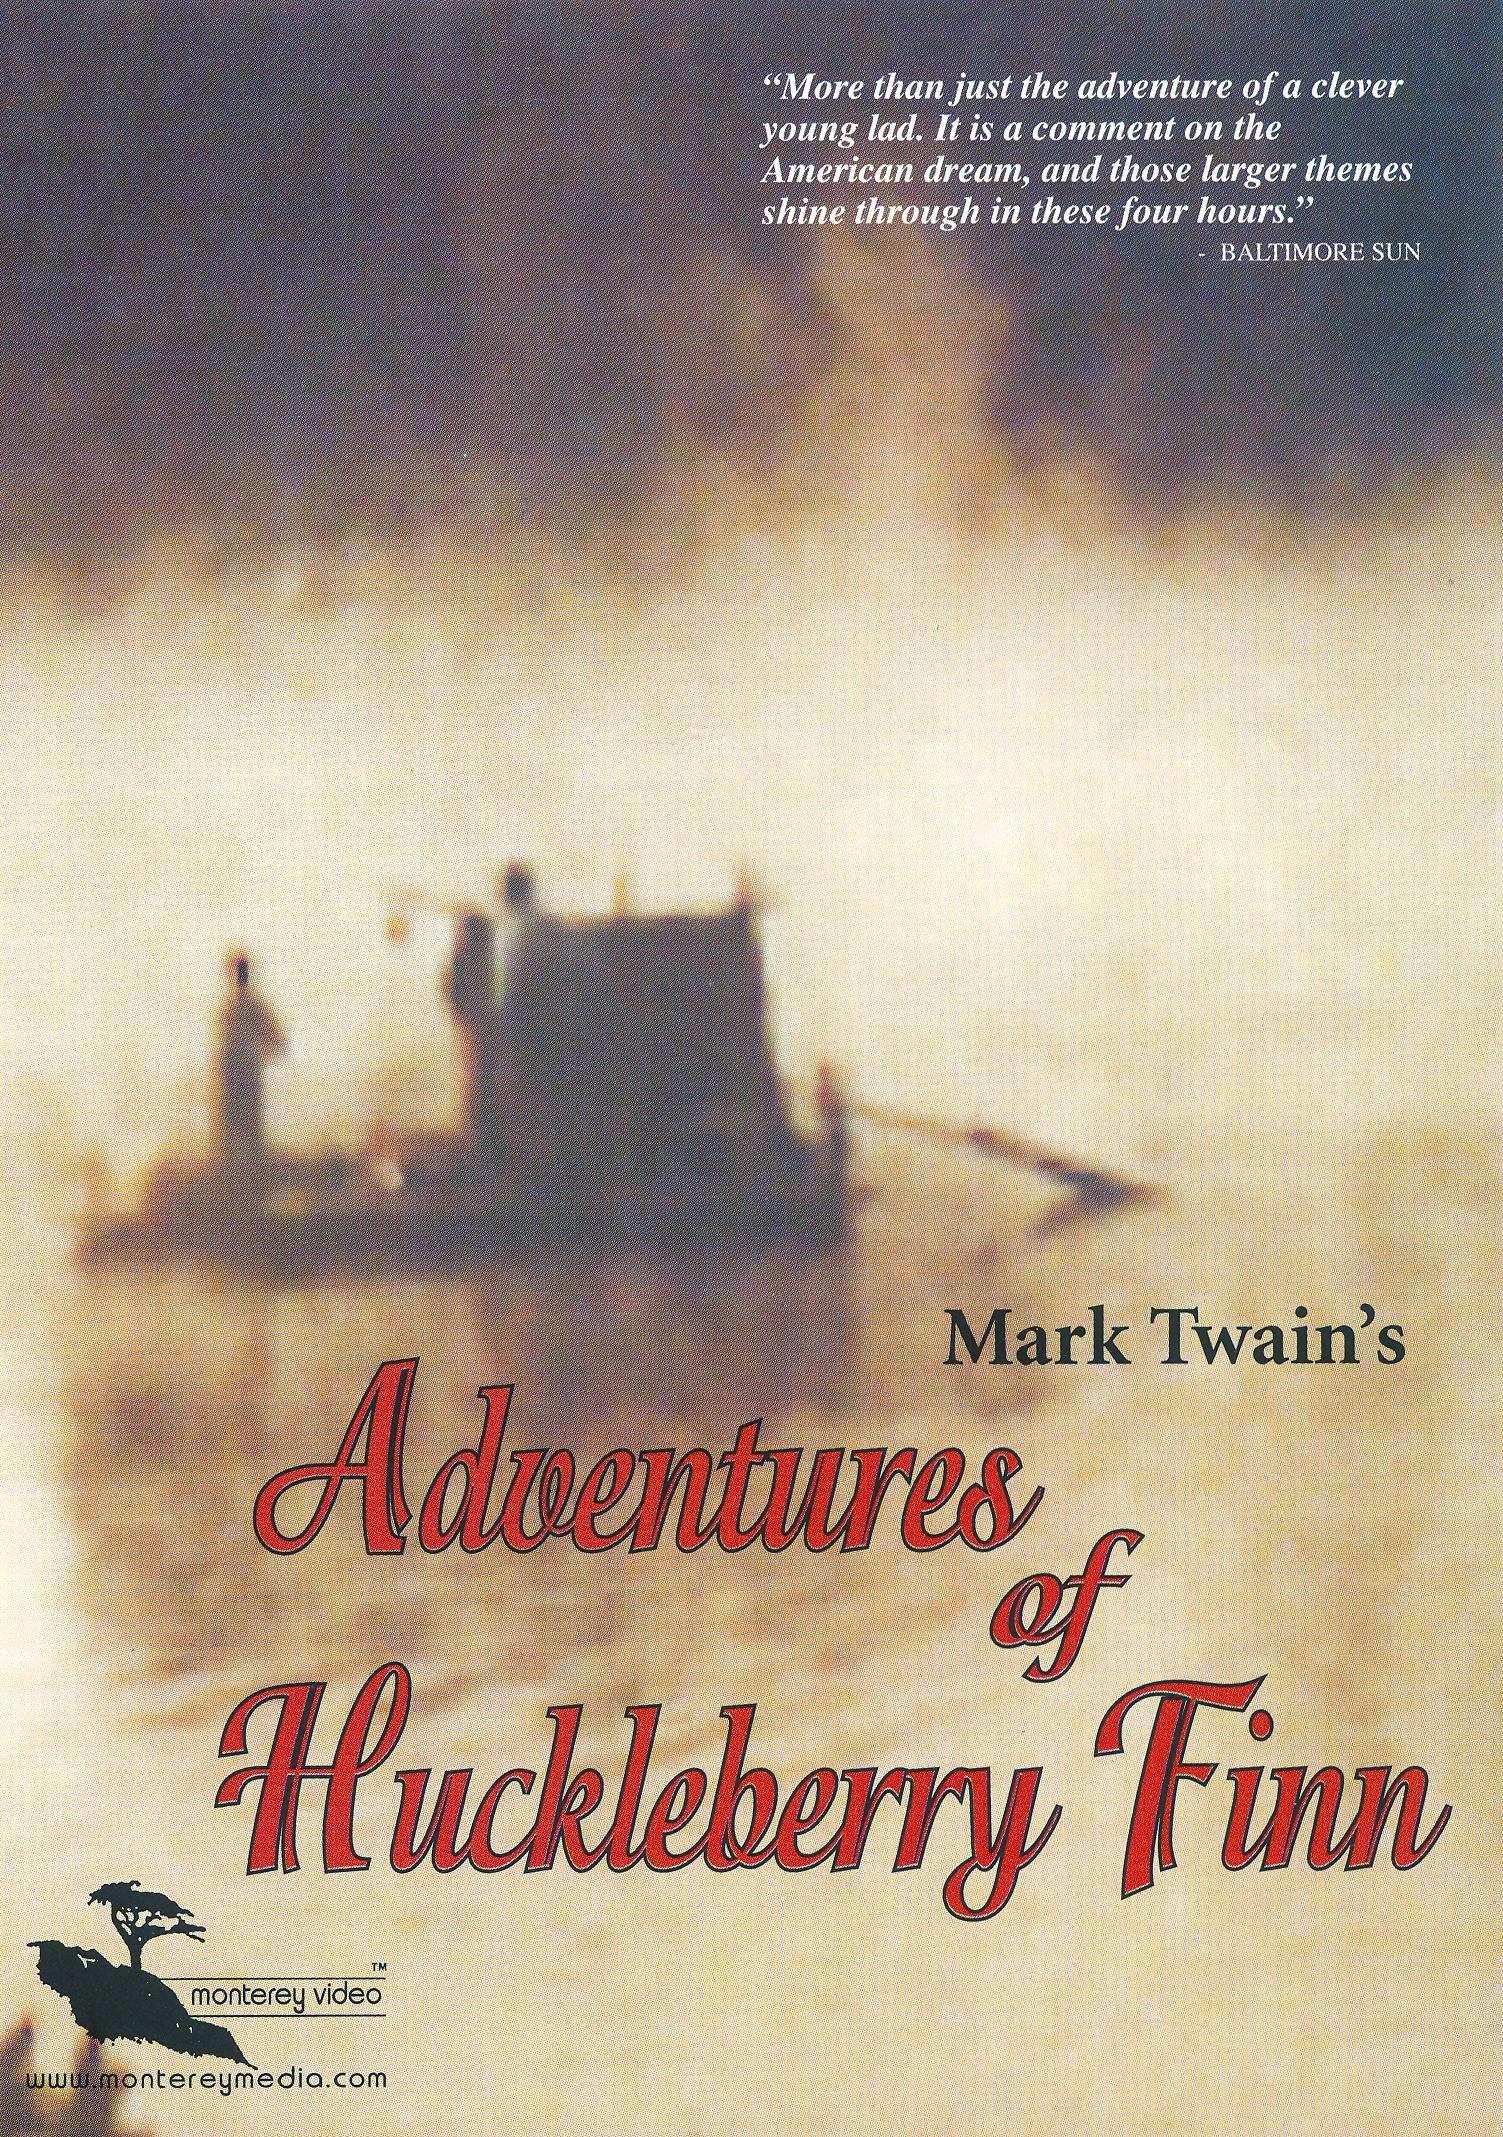 an overview of the adventures of huckleberry finn Mark twain's the adventures of huckleberry finn plot summary learn more about the adventures of huckleberry finn with a detailed plot summary and plot diagram.